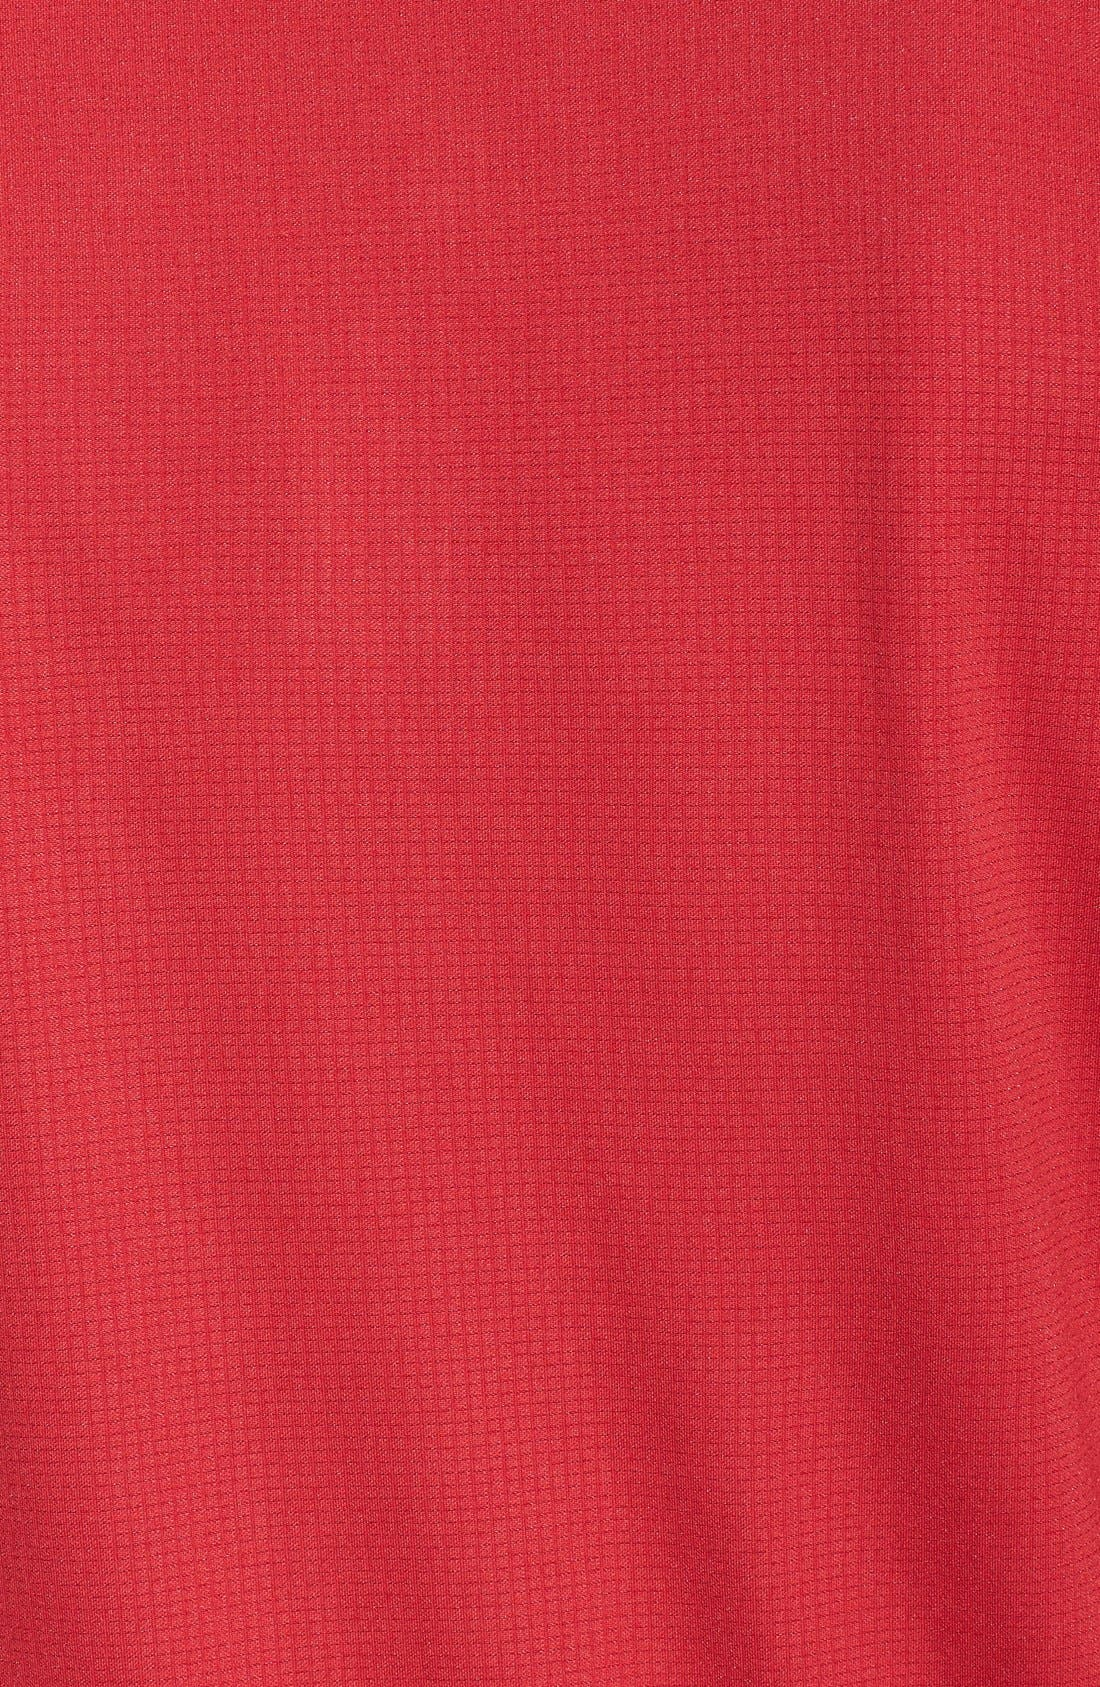 San Francisco 49ers - Genre DryTec Moisture Wicking Polo,                             Alternate thumbnail 3, color,                             Cardinal Red